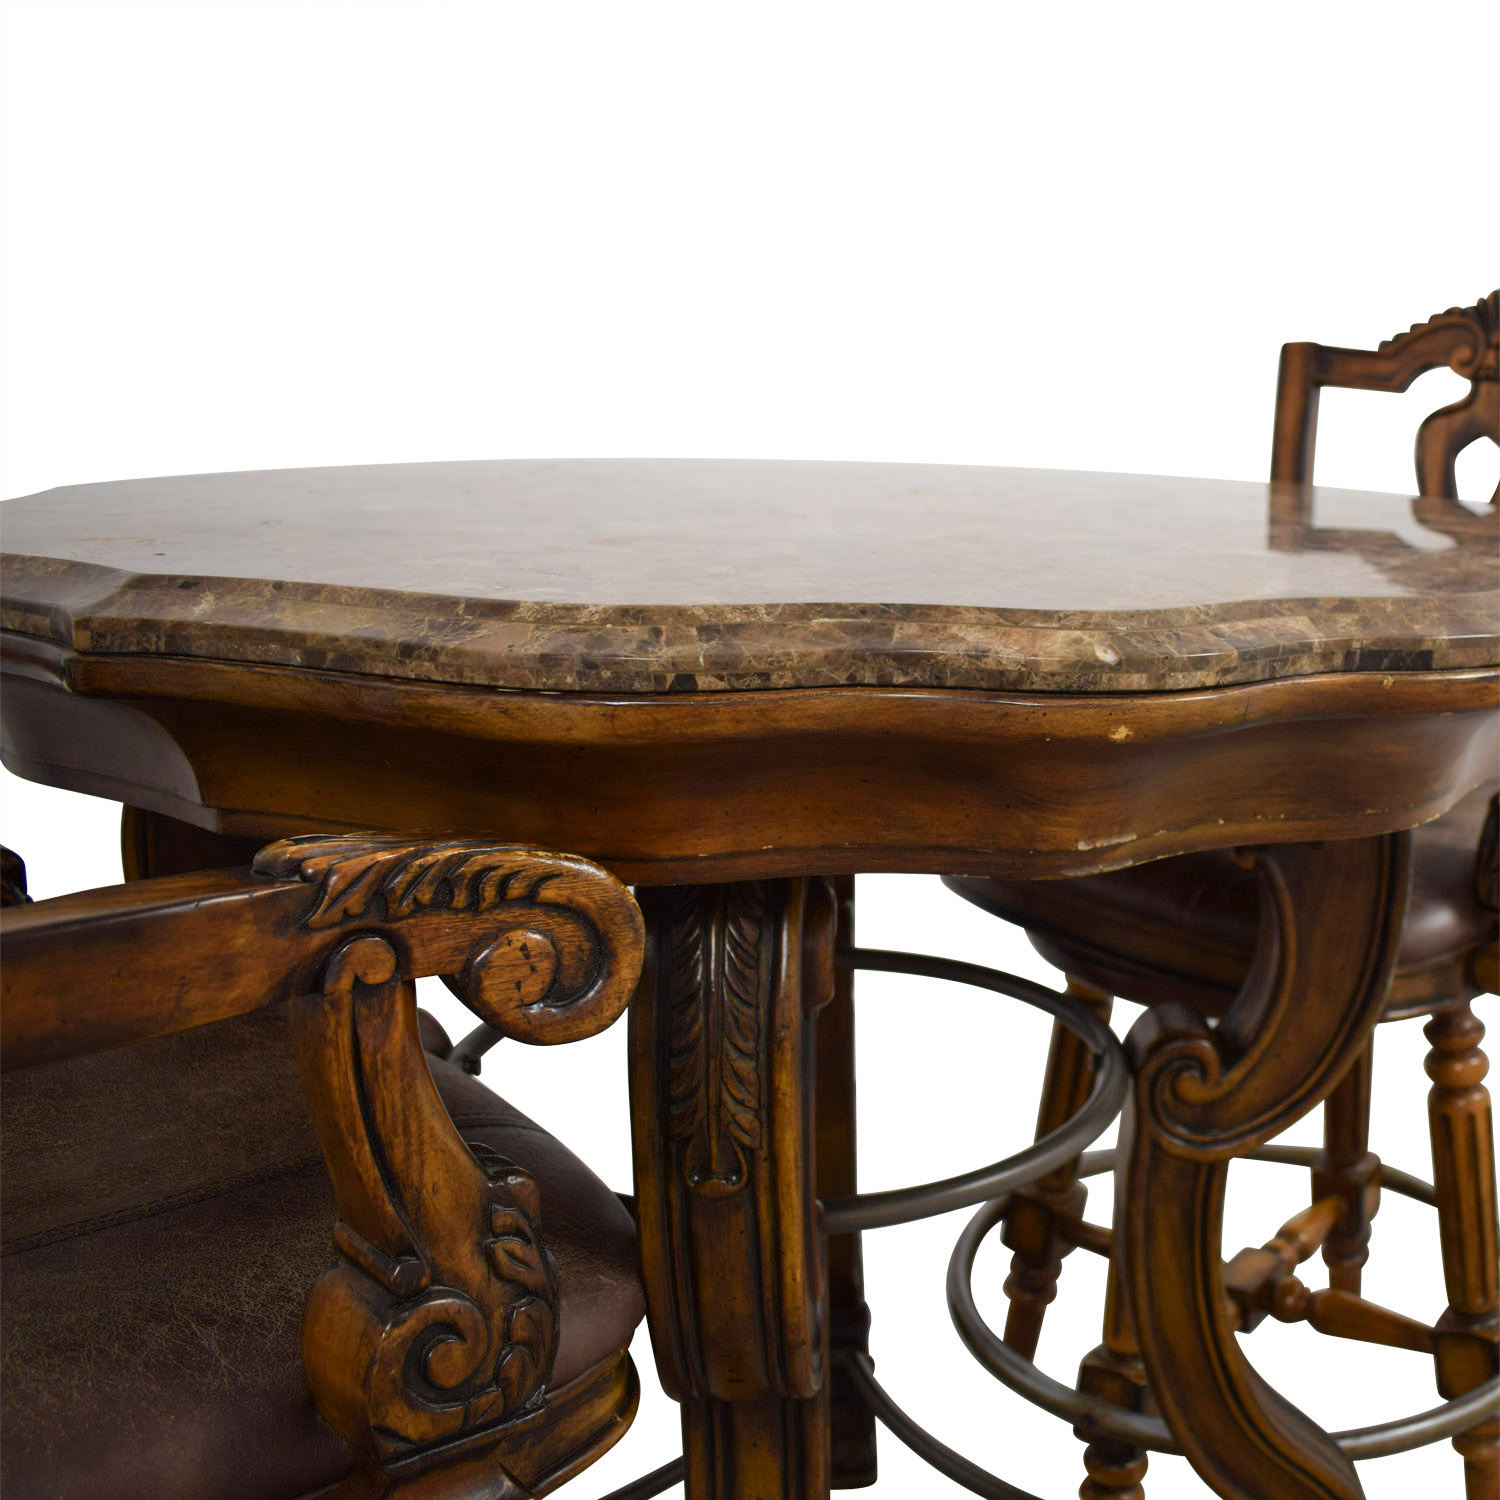 Ashley Furniture Ashley Furniture Faux Marble Pub Table and Chairs